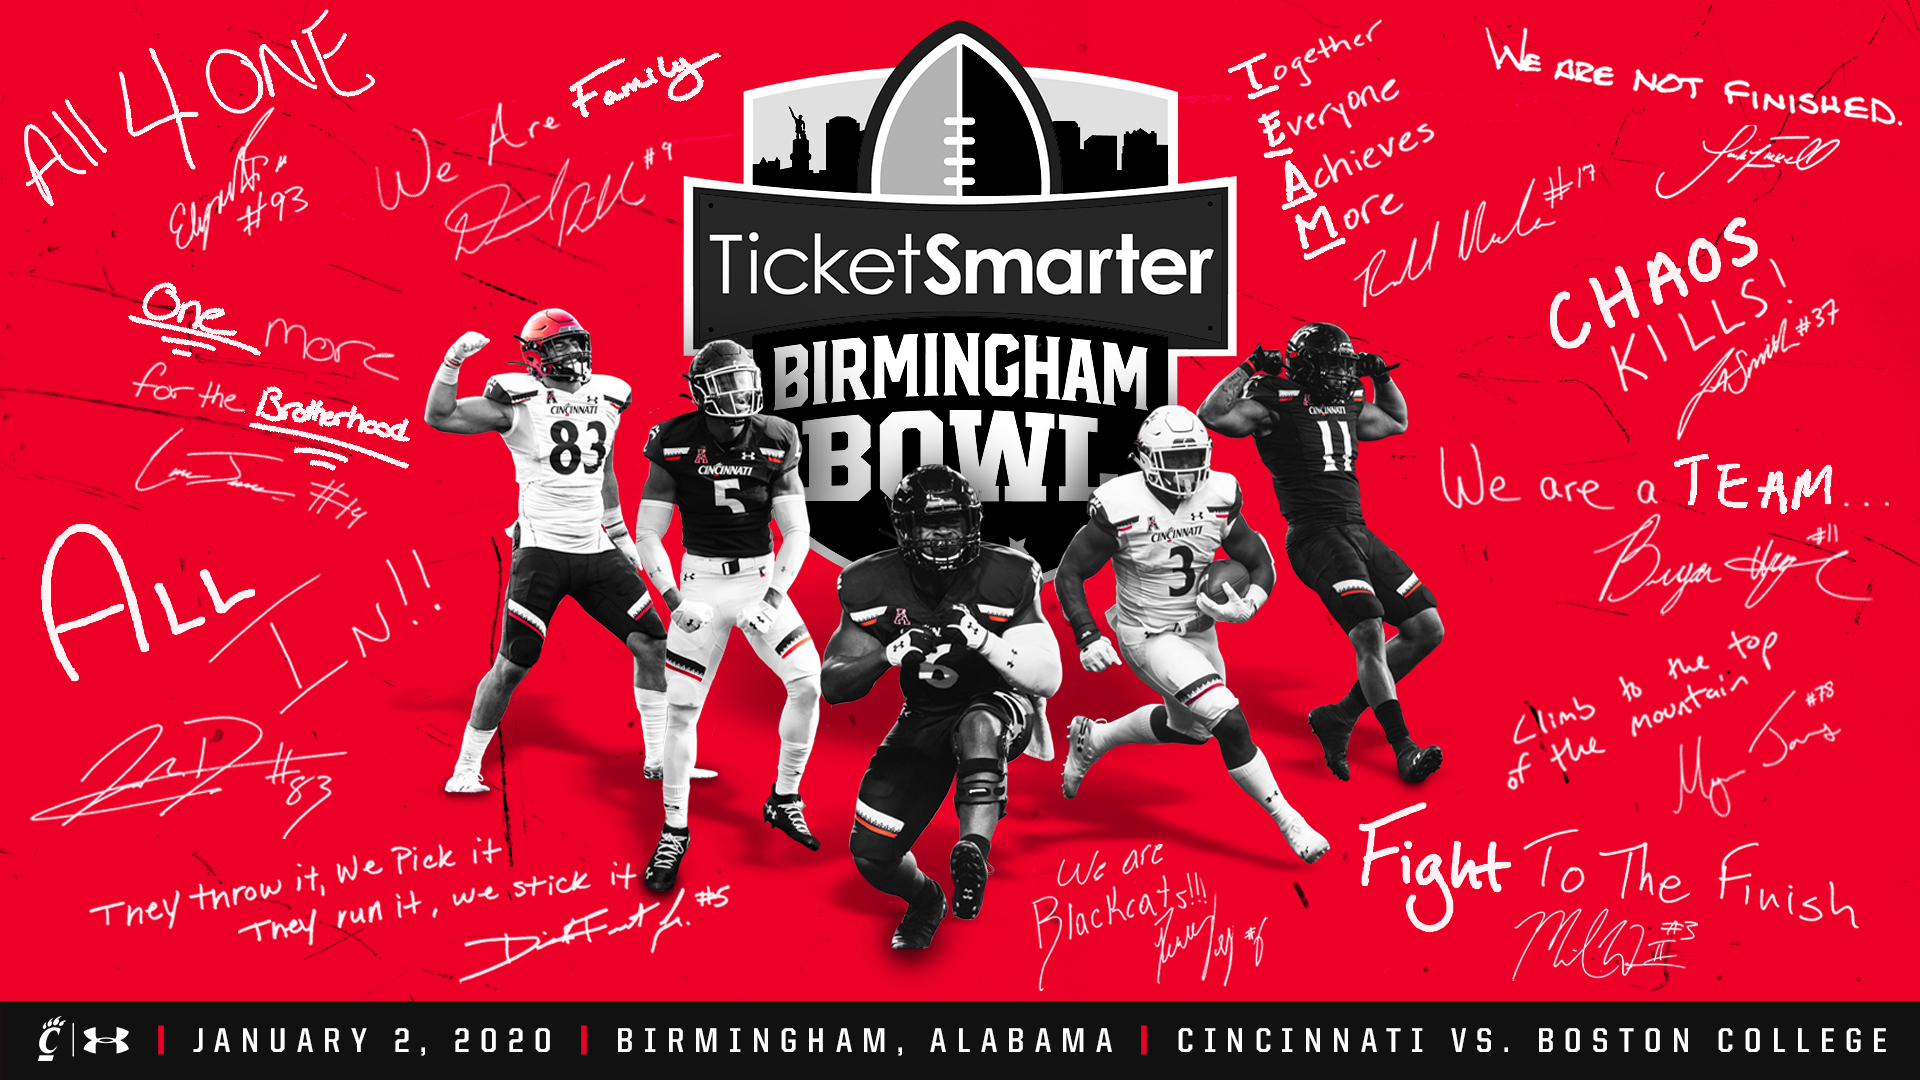 2020 19 Ncaa Football Bowl Games.No 21 Football Heads To Ticketsmarter Birmingham Bowl